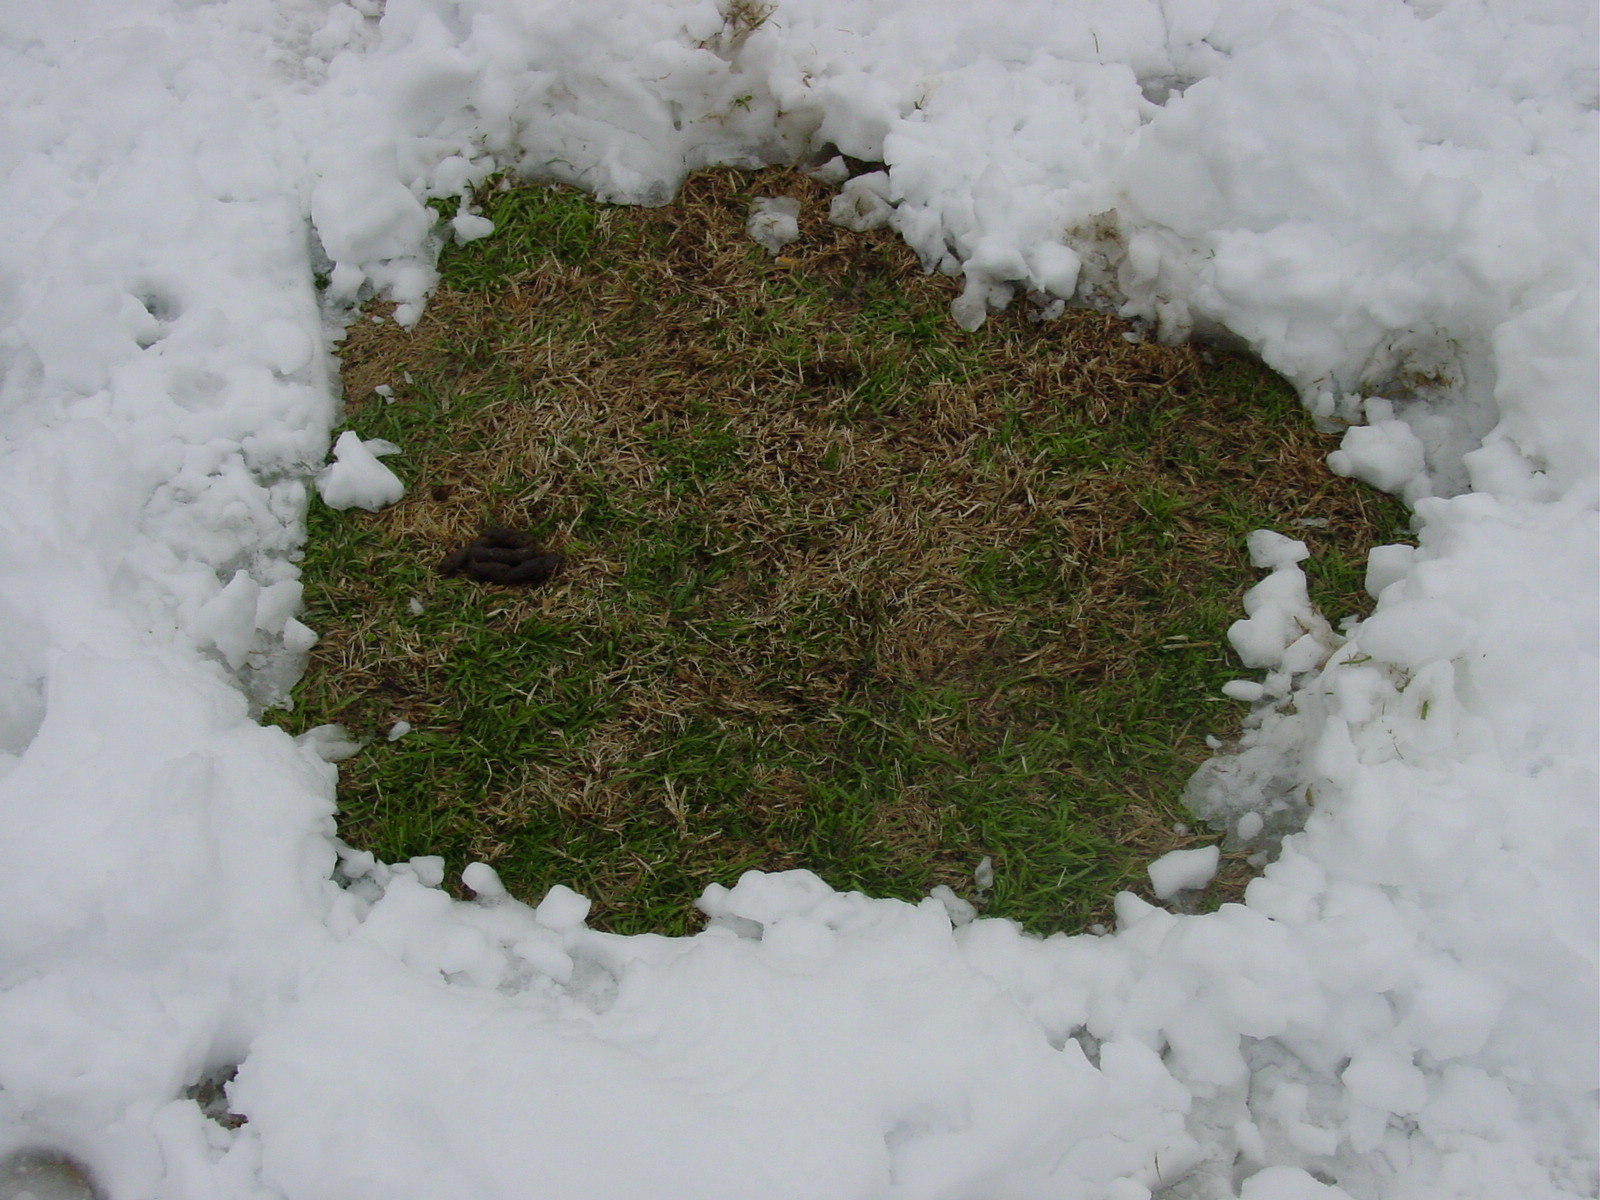 27-5561. Potty hole in the snow.